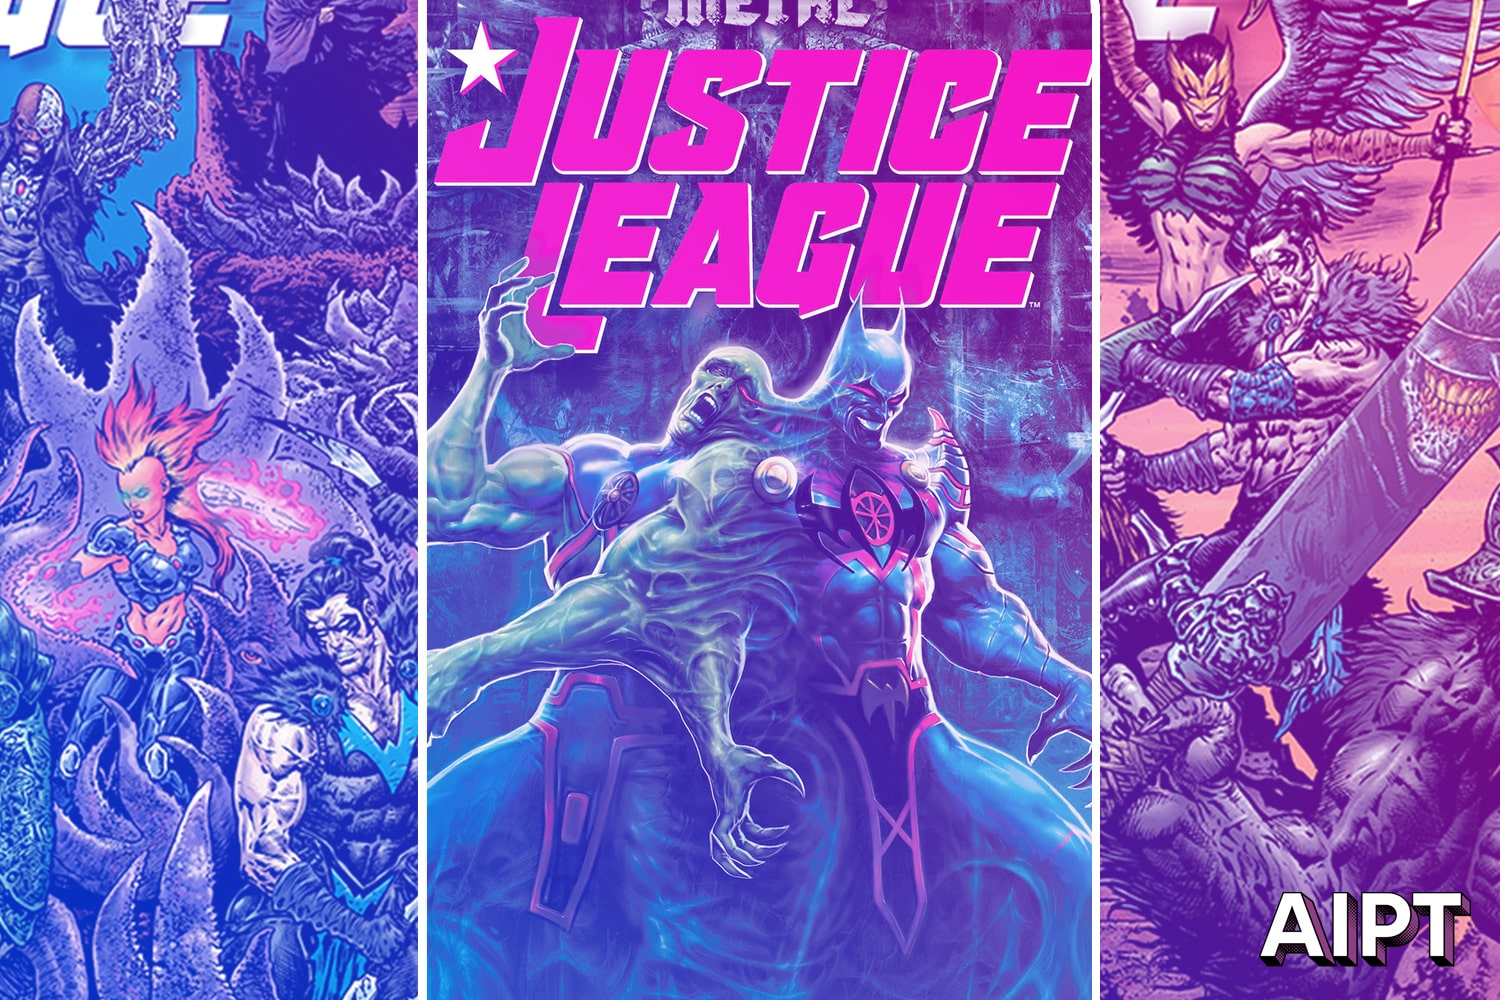 'Doom Metal' takes place in Justice League headed by Josh Williamson, Xermanico, and Robson Rocha.